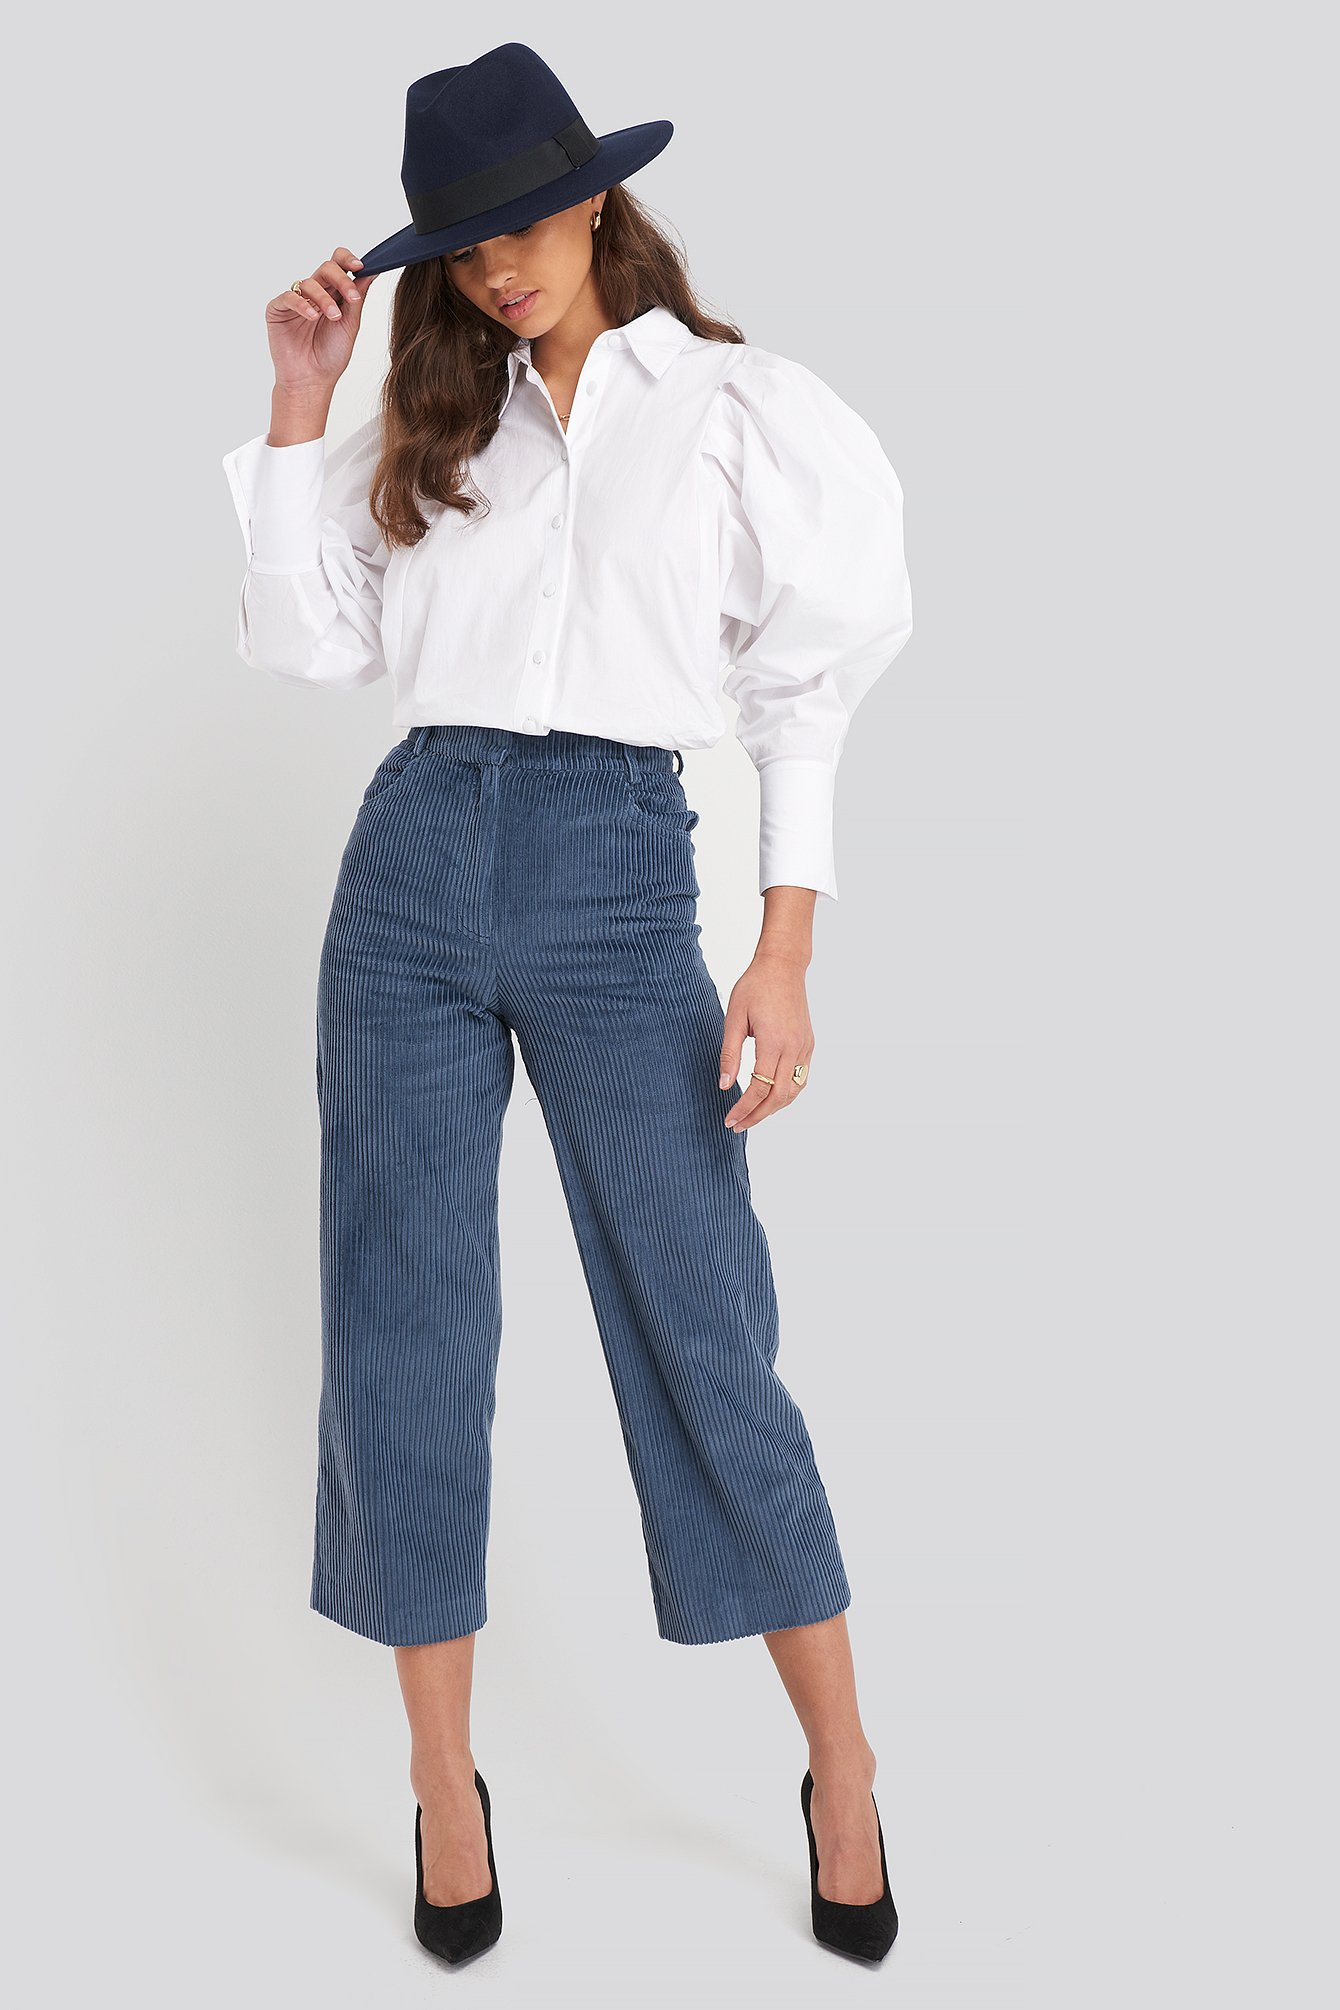 Medium Blue Pan Trousers